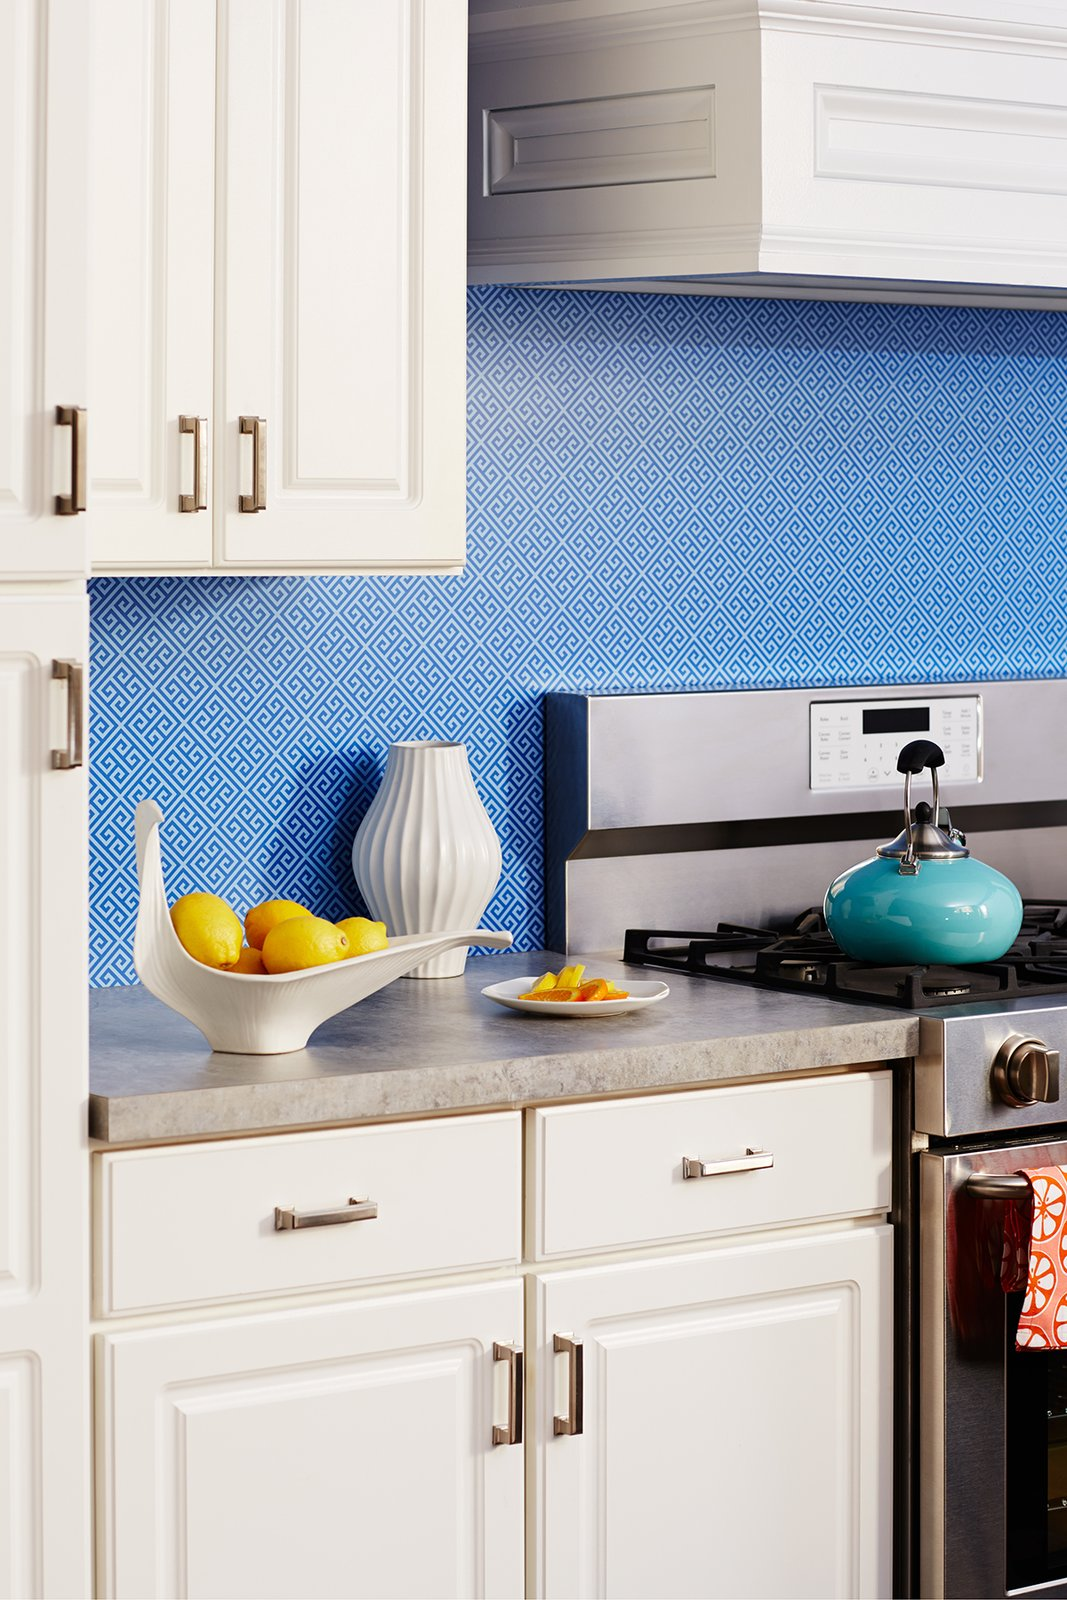 25 Backsplash Ideas For Your Kitchen Renovation » Yvette Teng